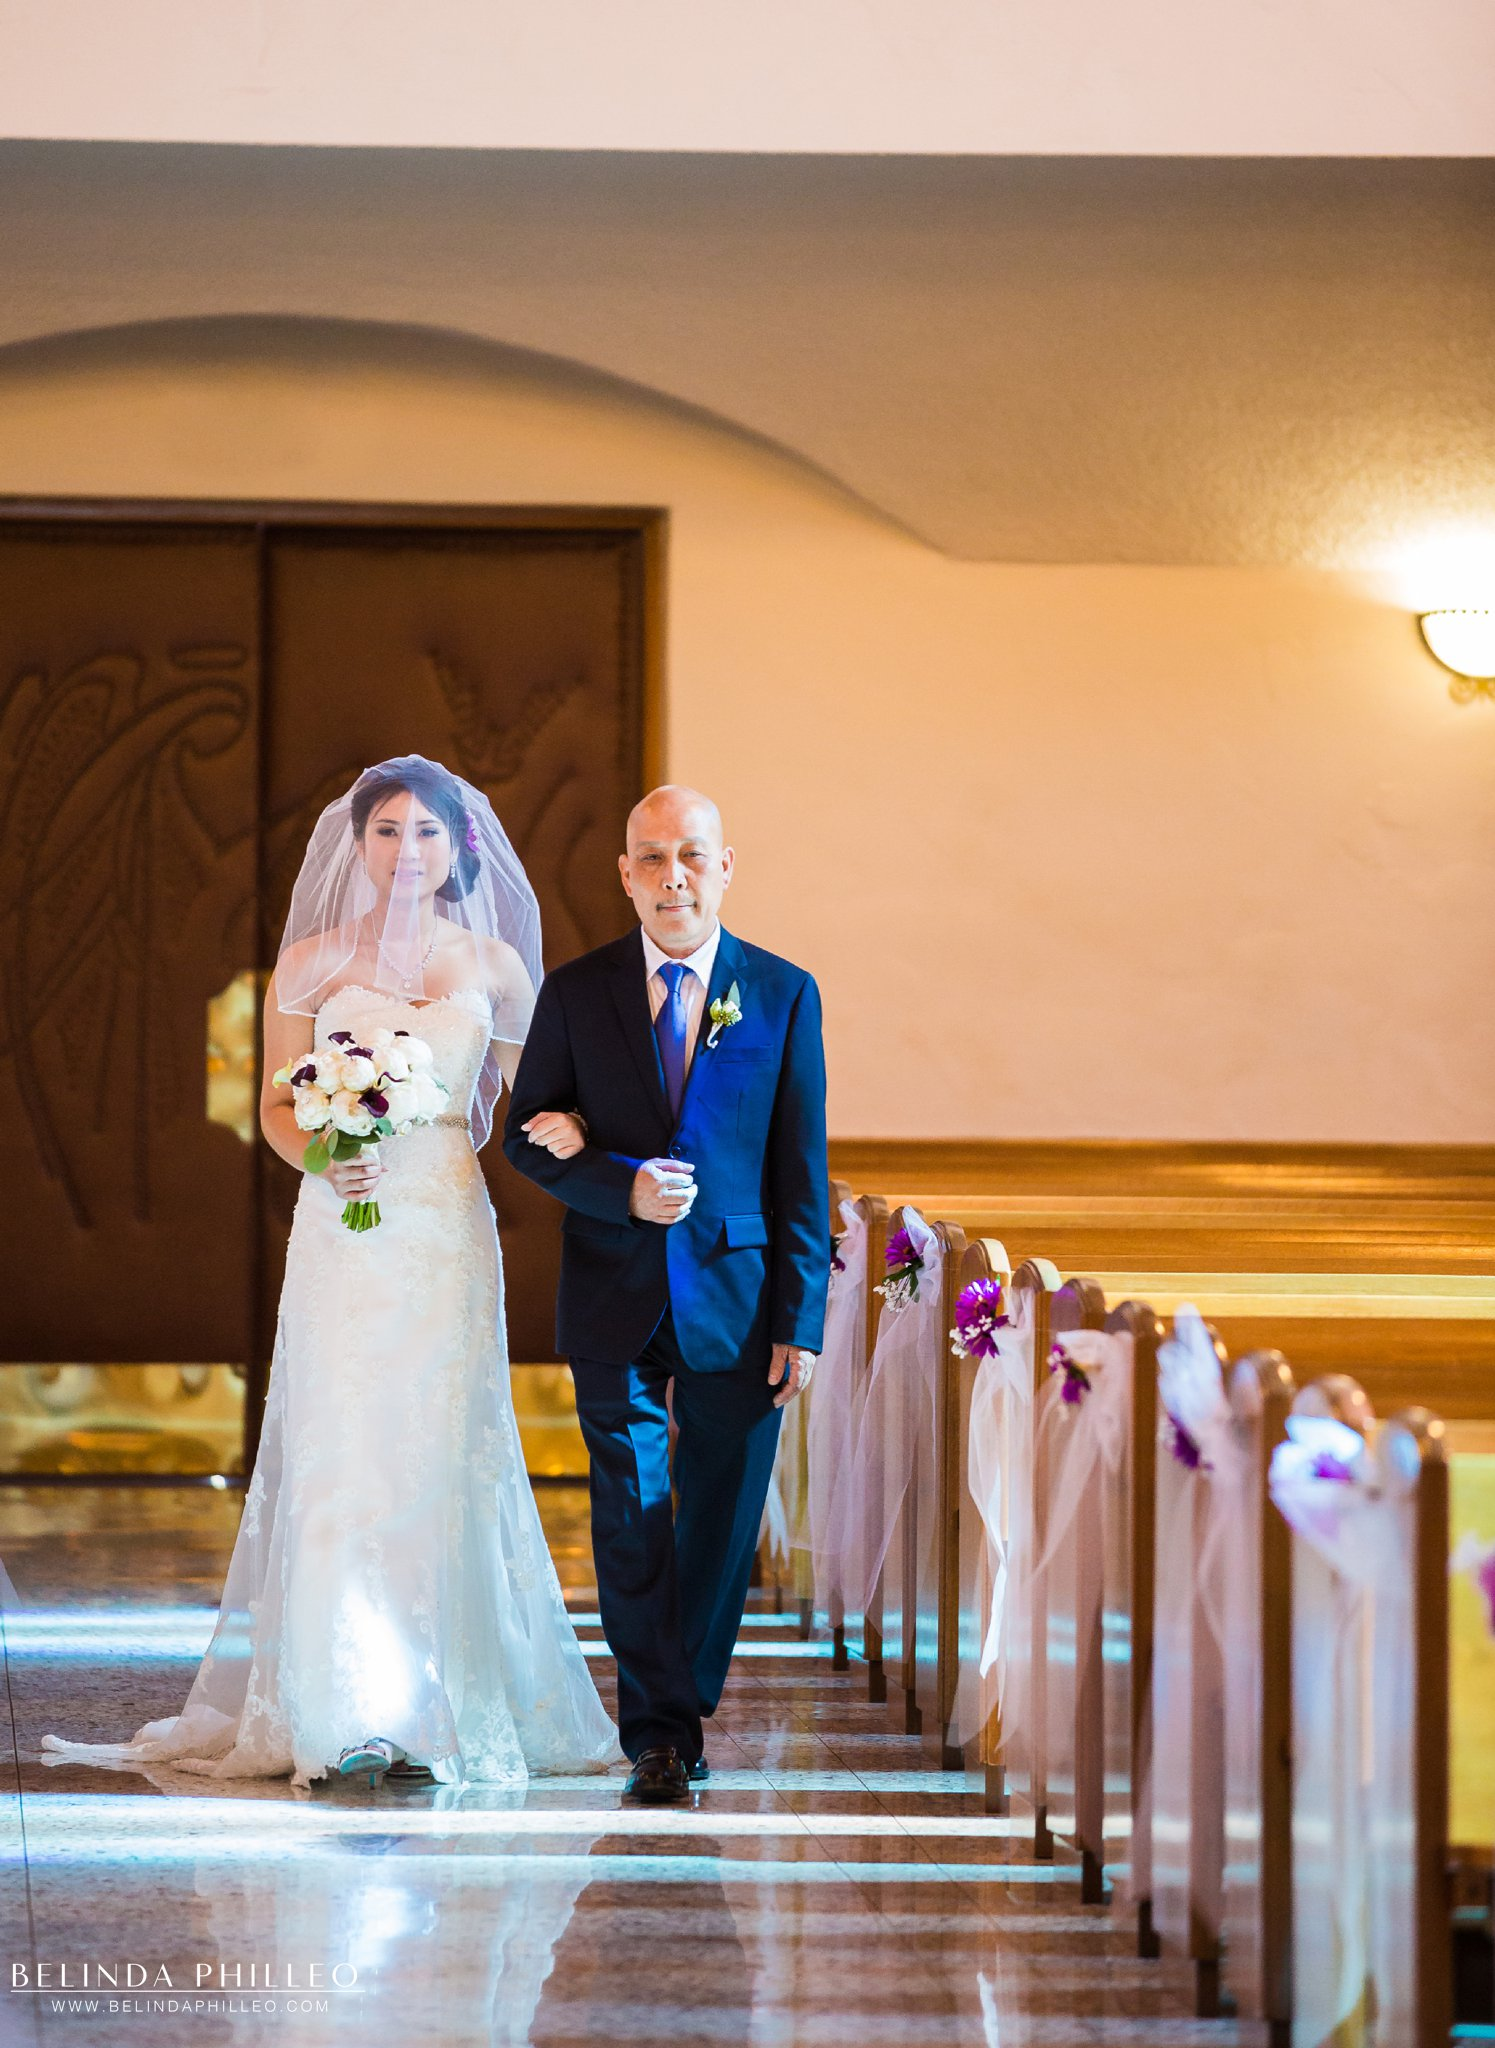 Bride is escorted down the aisle by her father at the San Gabriel Mission & church